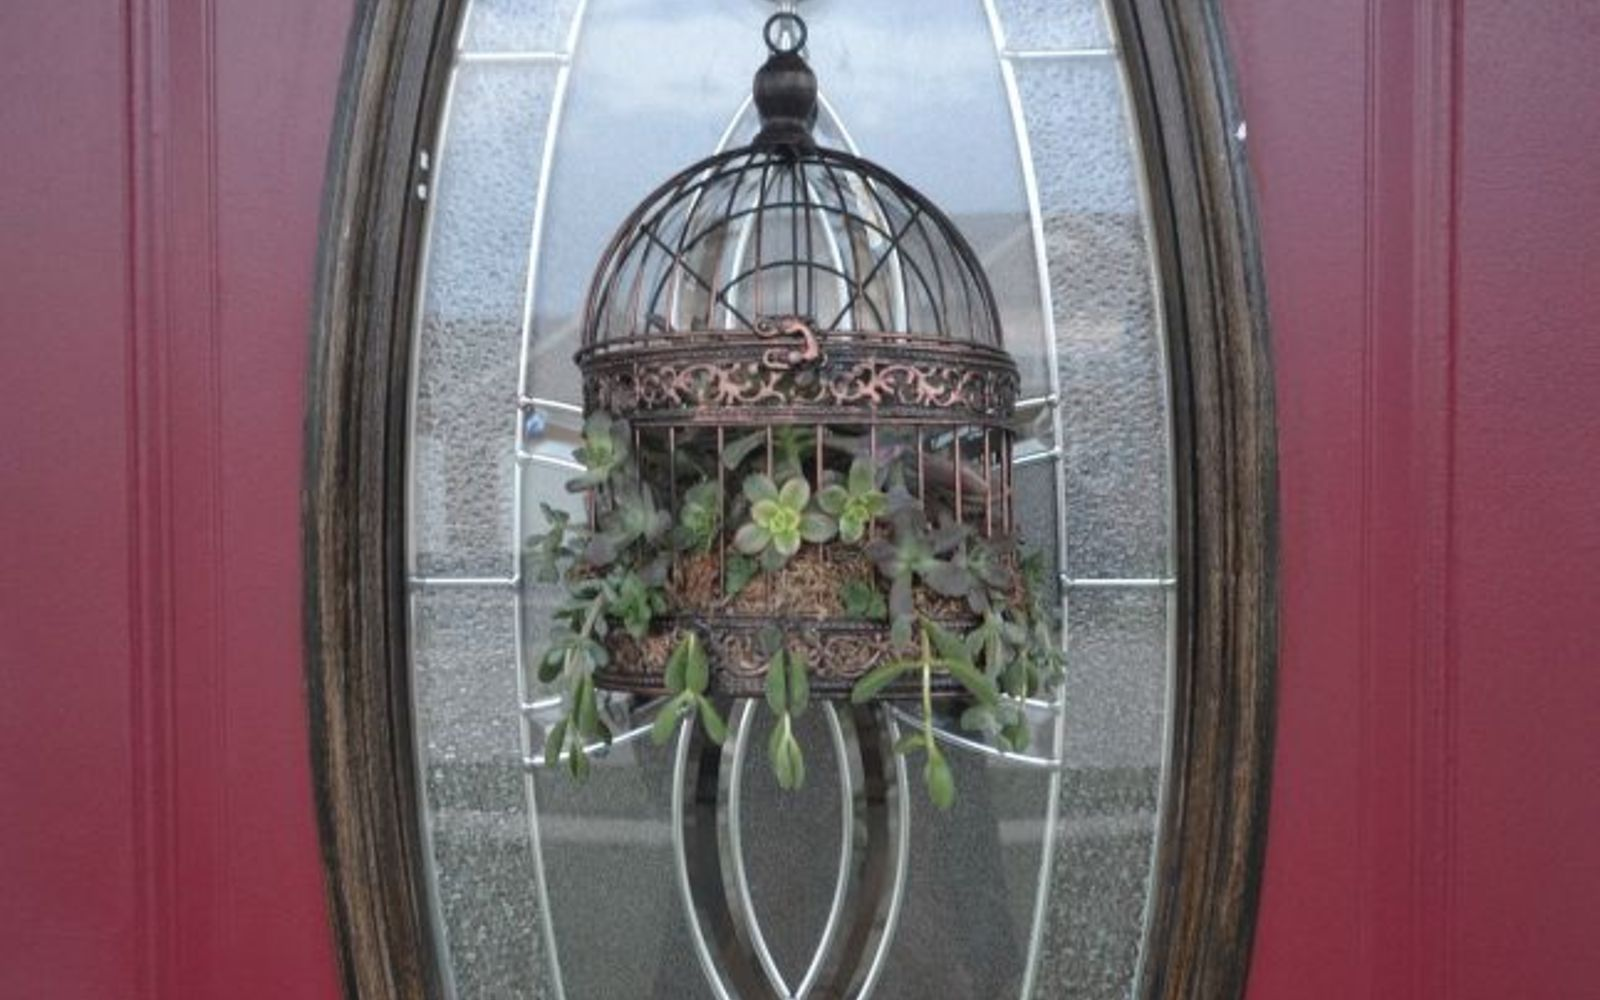 s 17 insanely fun ways to display your favorite succulents, flowers, gardening, succulents, Fill a birdcage for some front door decor